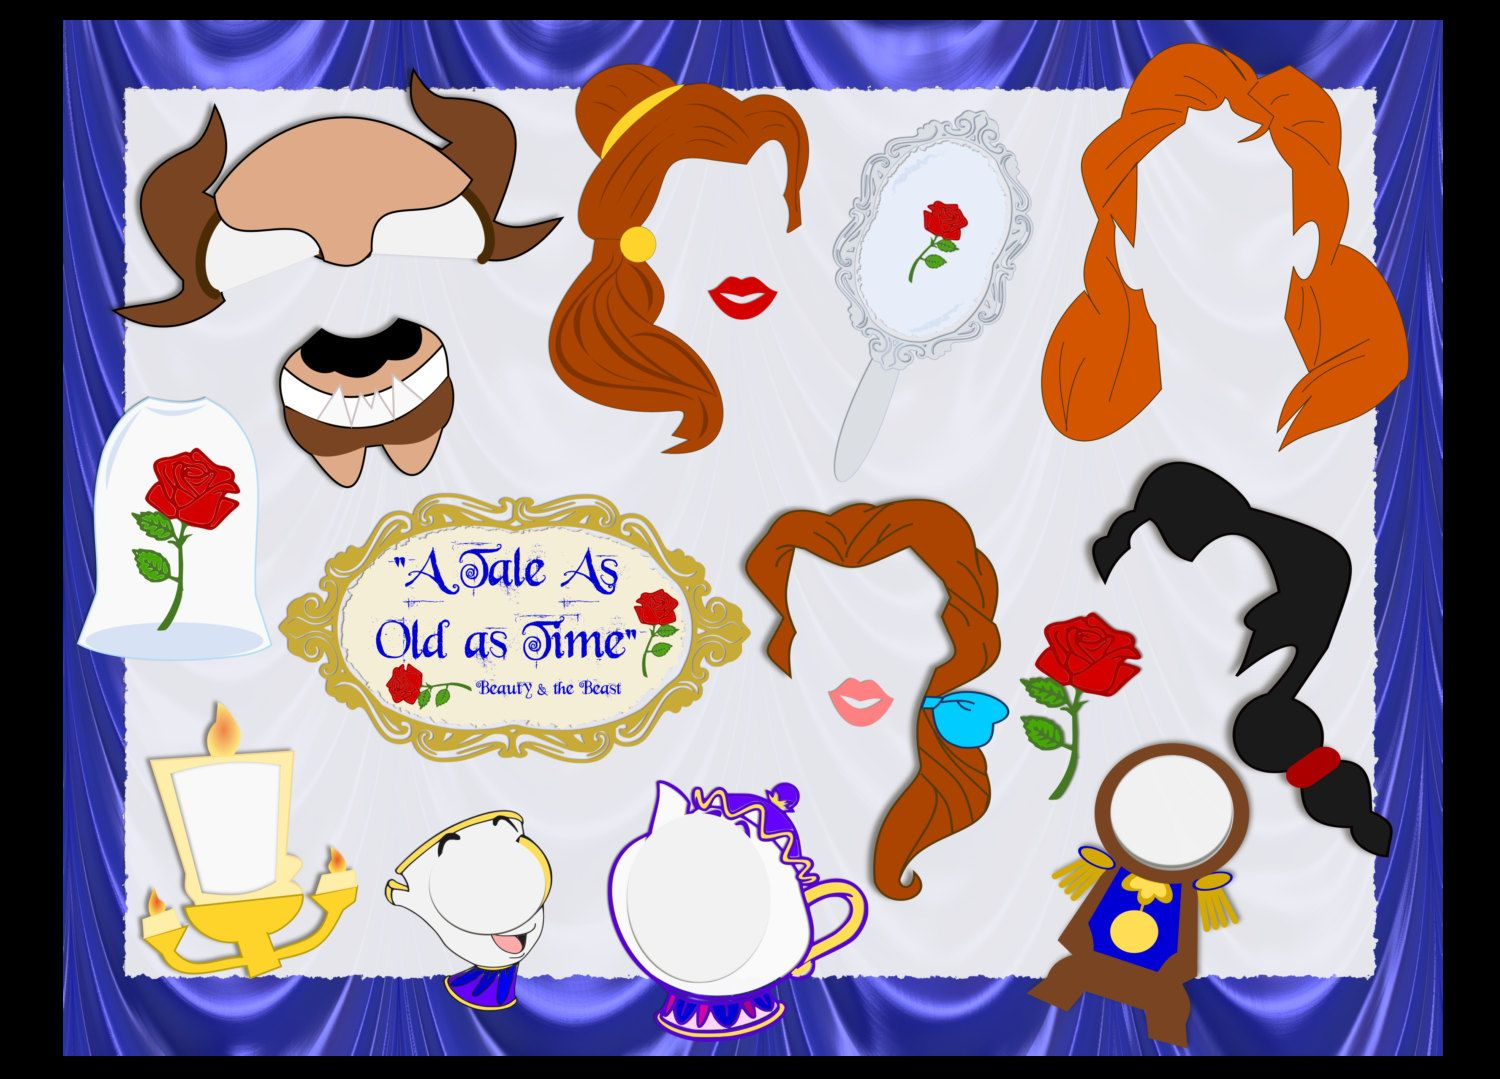 Beauty & the Beast Inspired DIY Printable Props-  Beauty and the Beast Party Photo Booth Props, Unofficial Princess DIY party props by CatchingColorFlies on Etsy https://www.etsy.com/uk/listing/288860909/beauty-the-beast-inspired-diy-printable